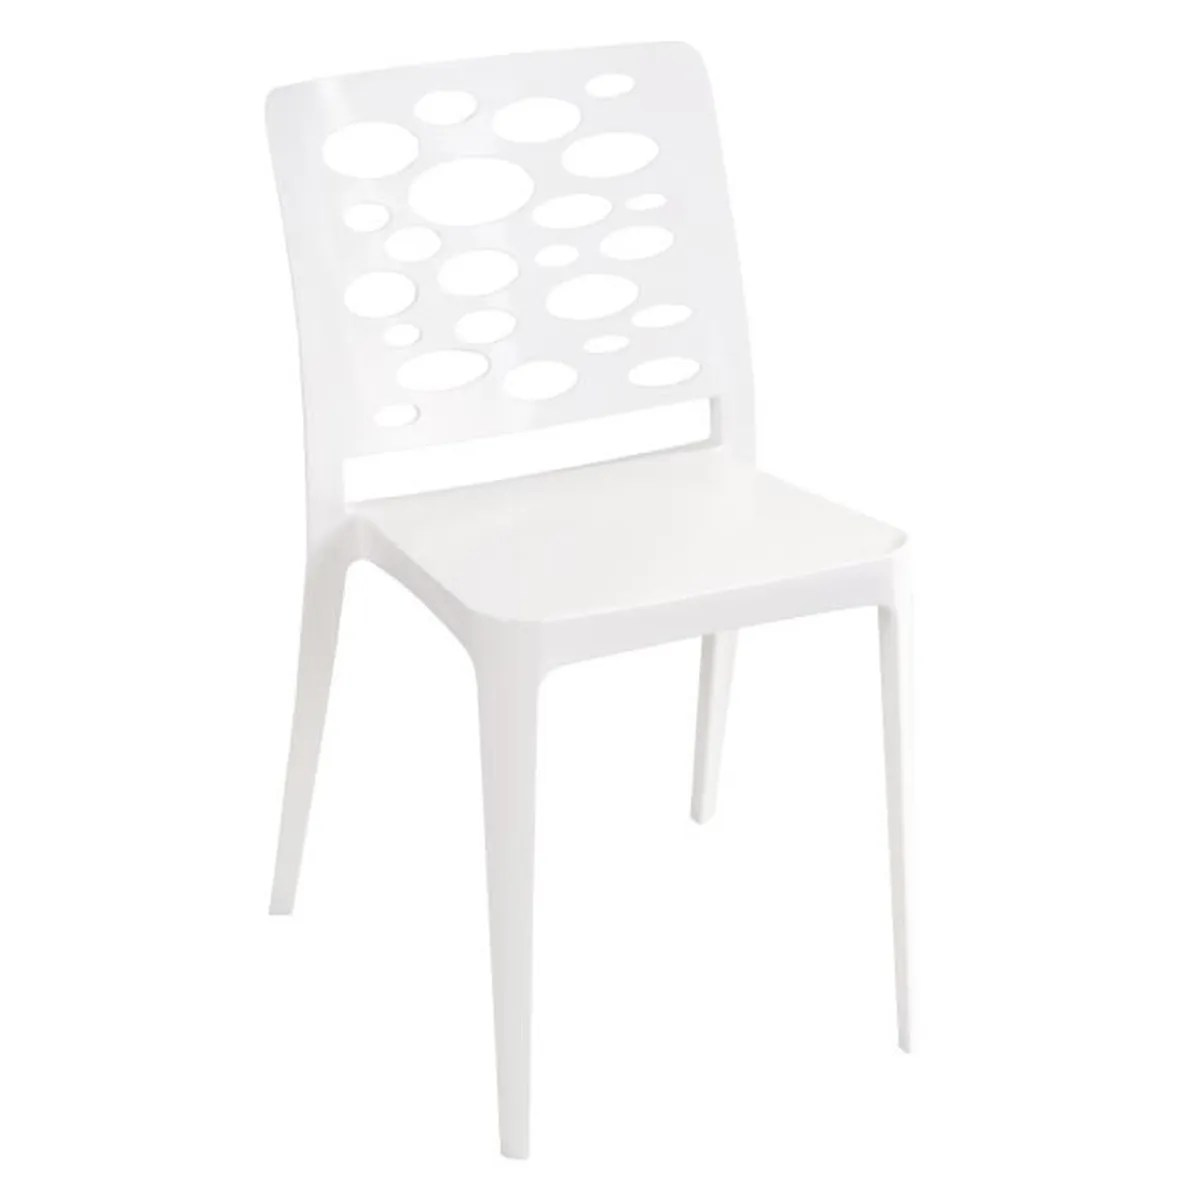 Lot Chaises Jardin Lot 8 Chaises Jardin Empilables Blanches Dossier A